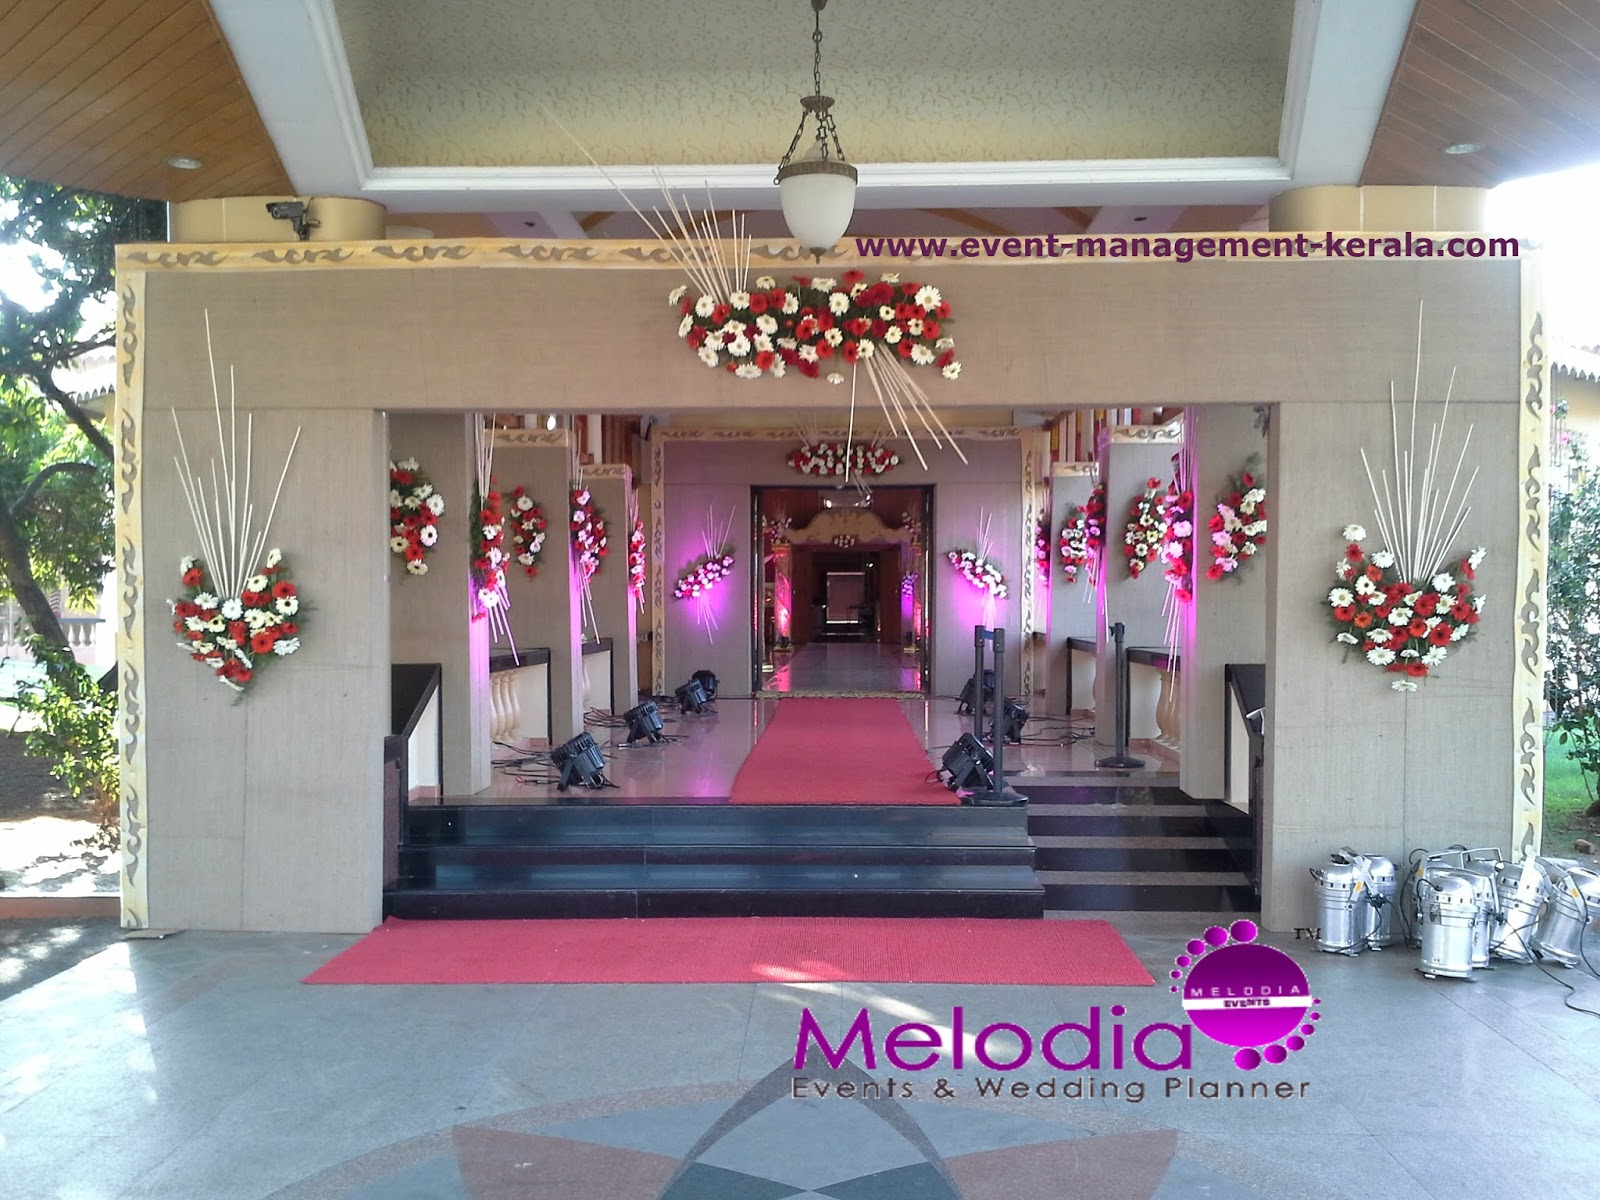 Melodia Event Management Kerala Top Wedding Planners in Cochin